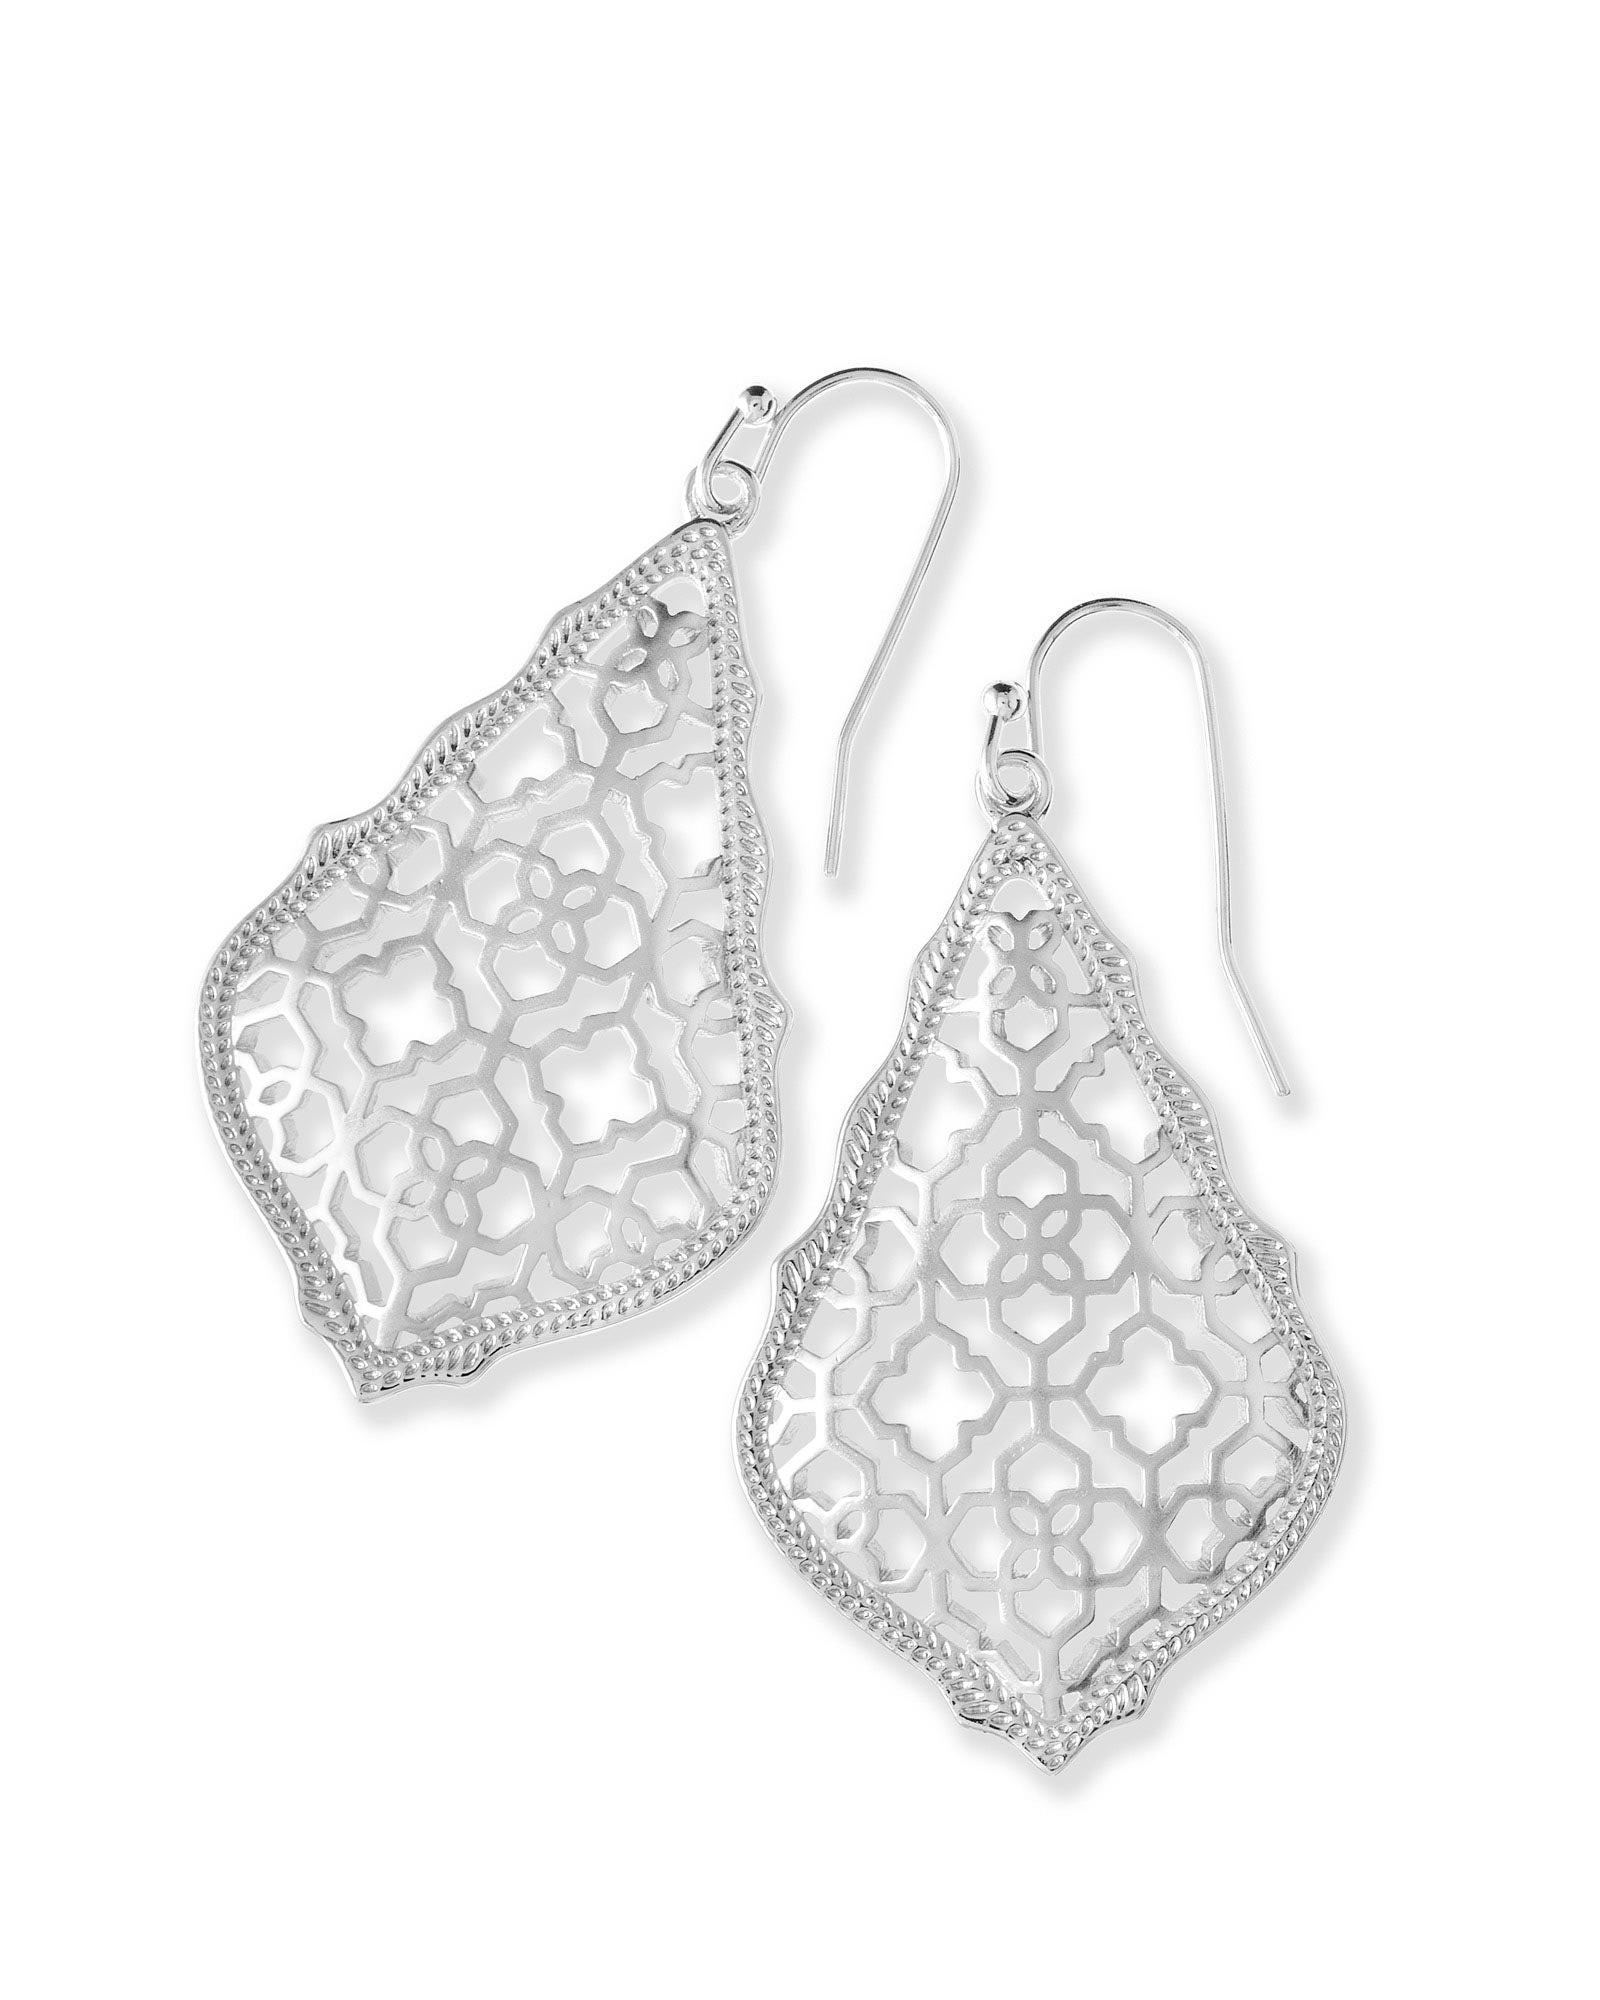 Addie Silver Drop Earrings In Silver Filigree Mix